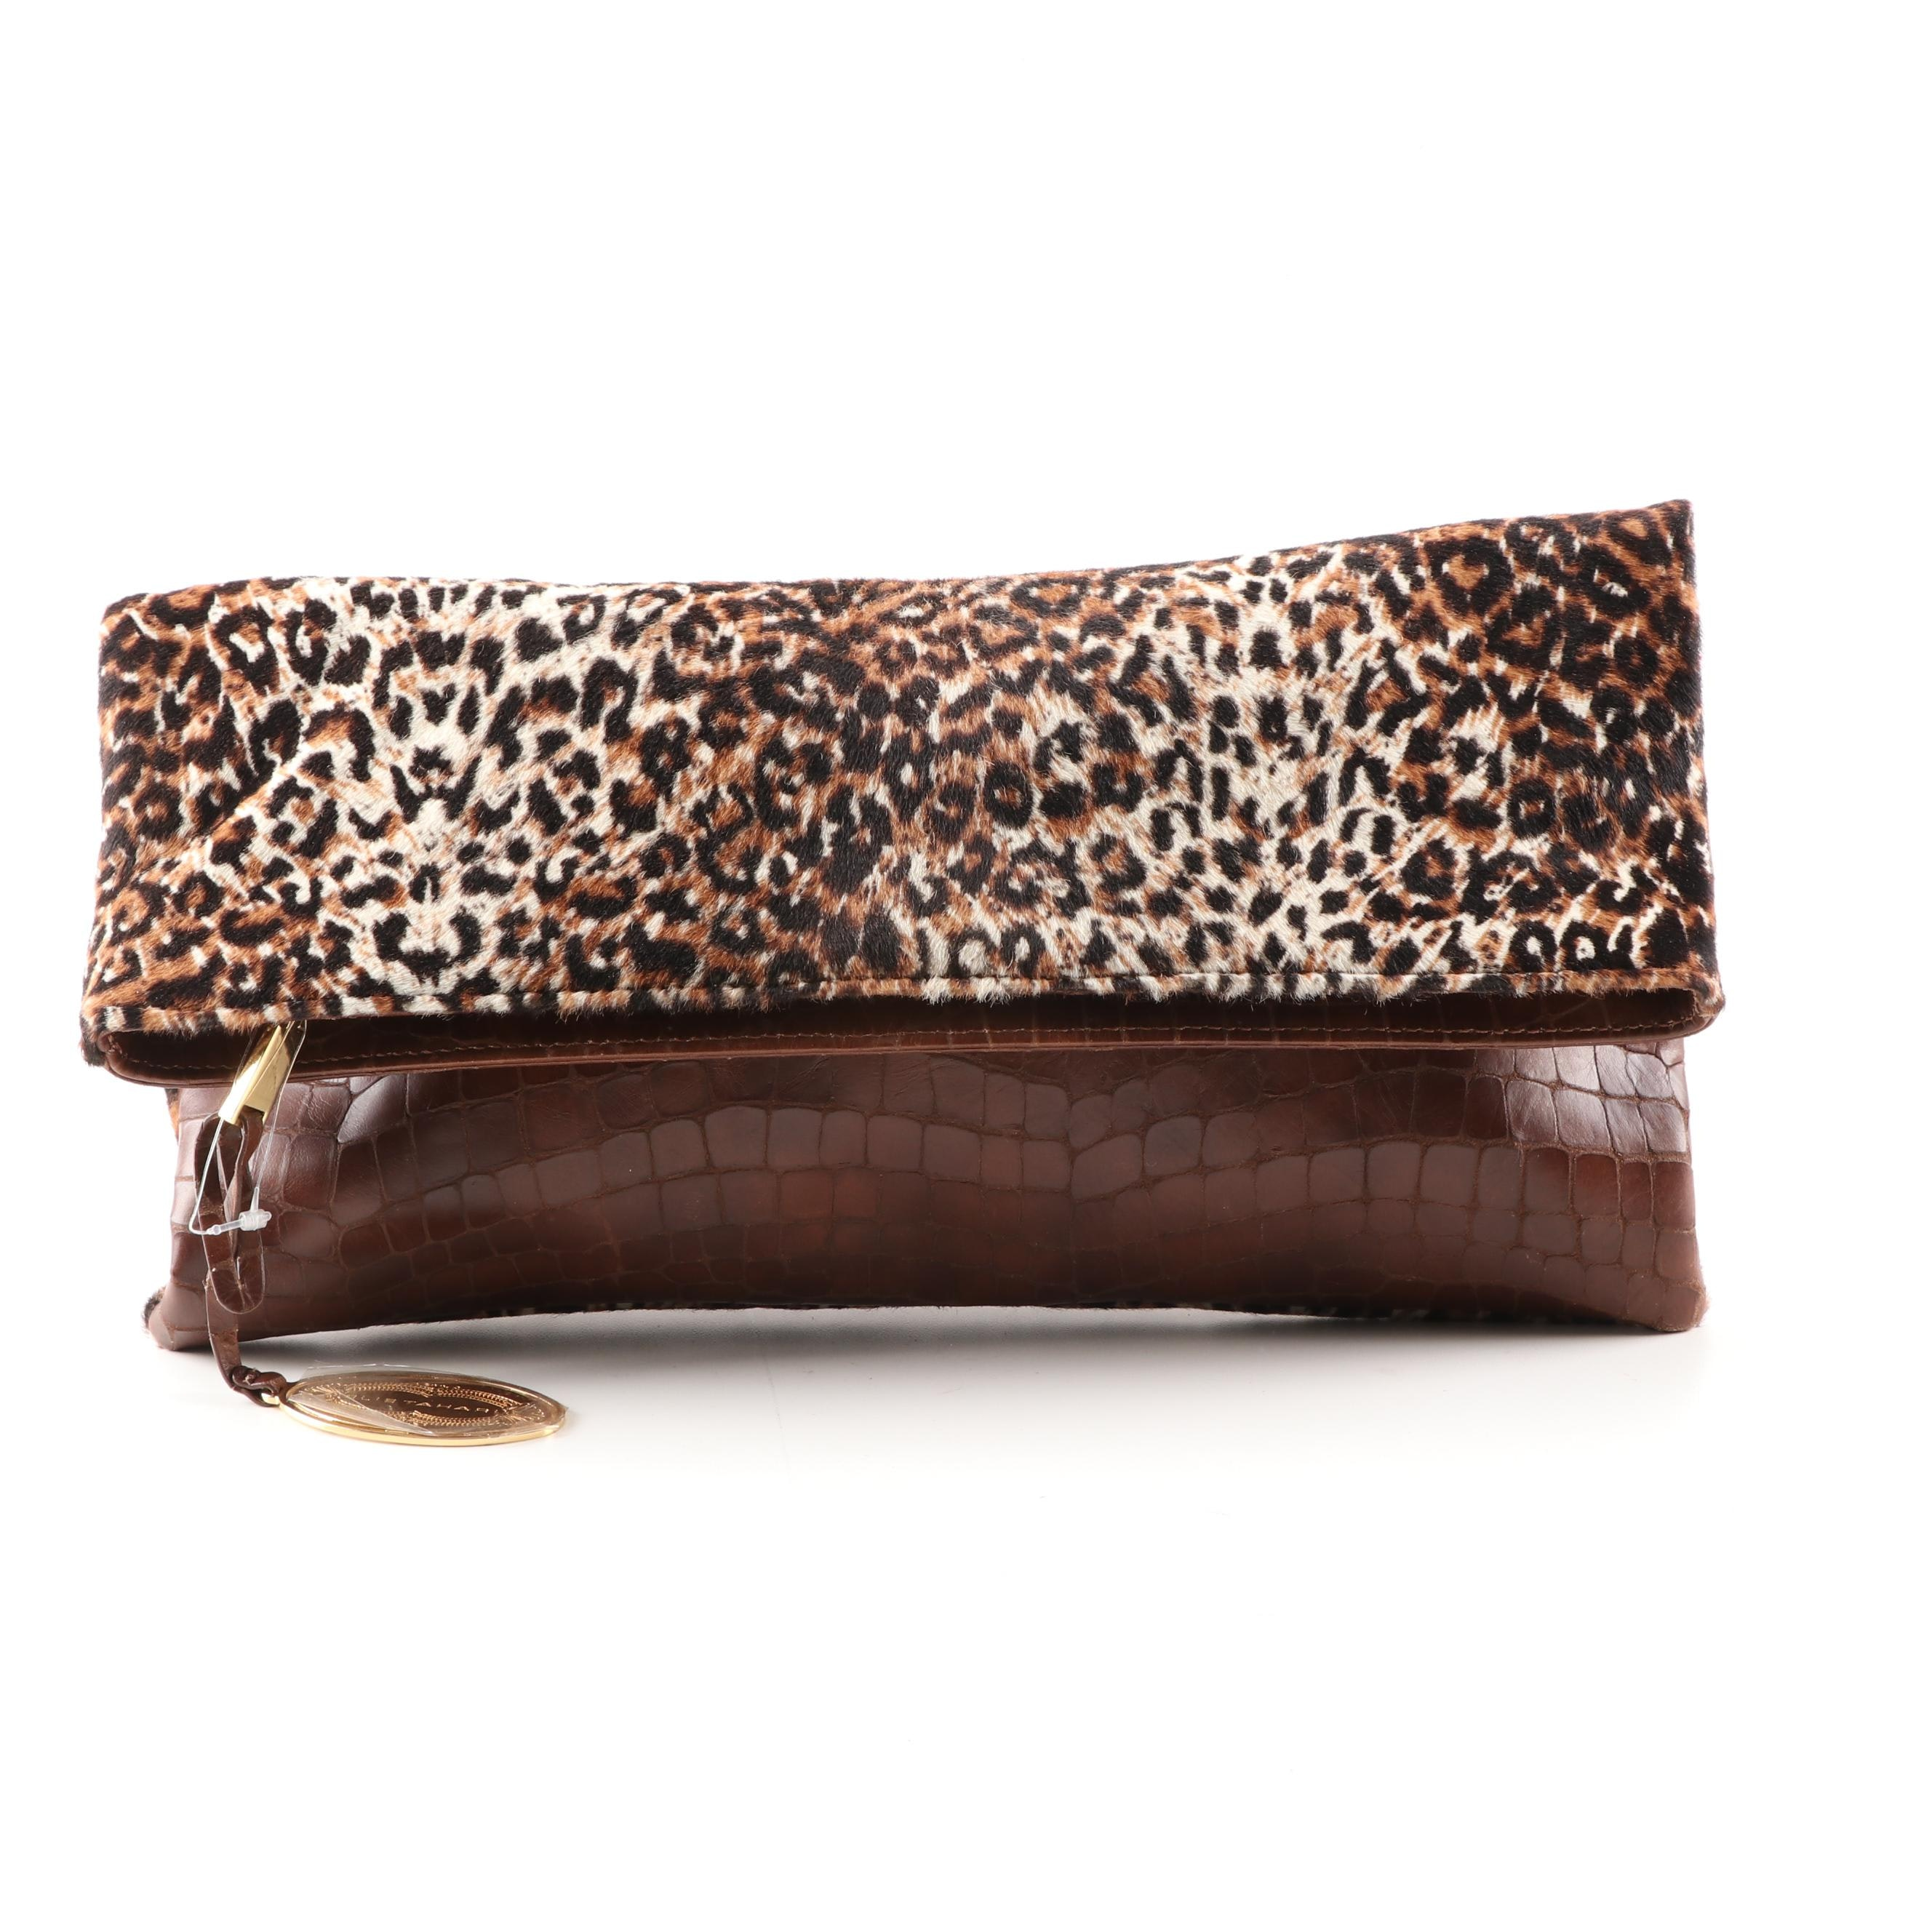 Elie Tahari Leopard Print Dyed Cowhide and Embossed Leather Foldover Clutch